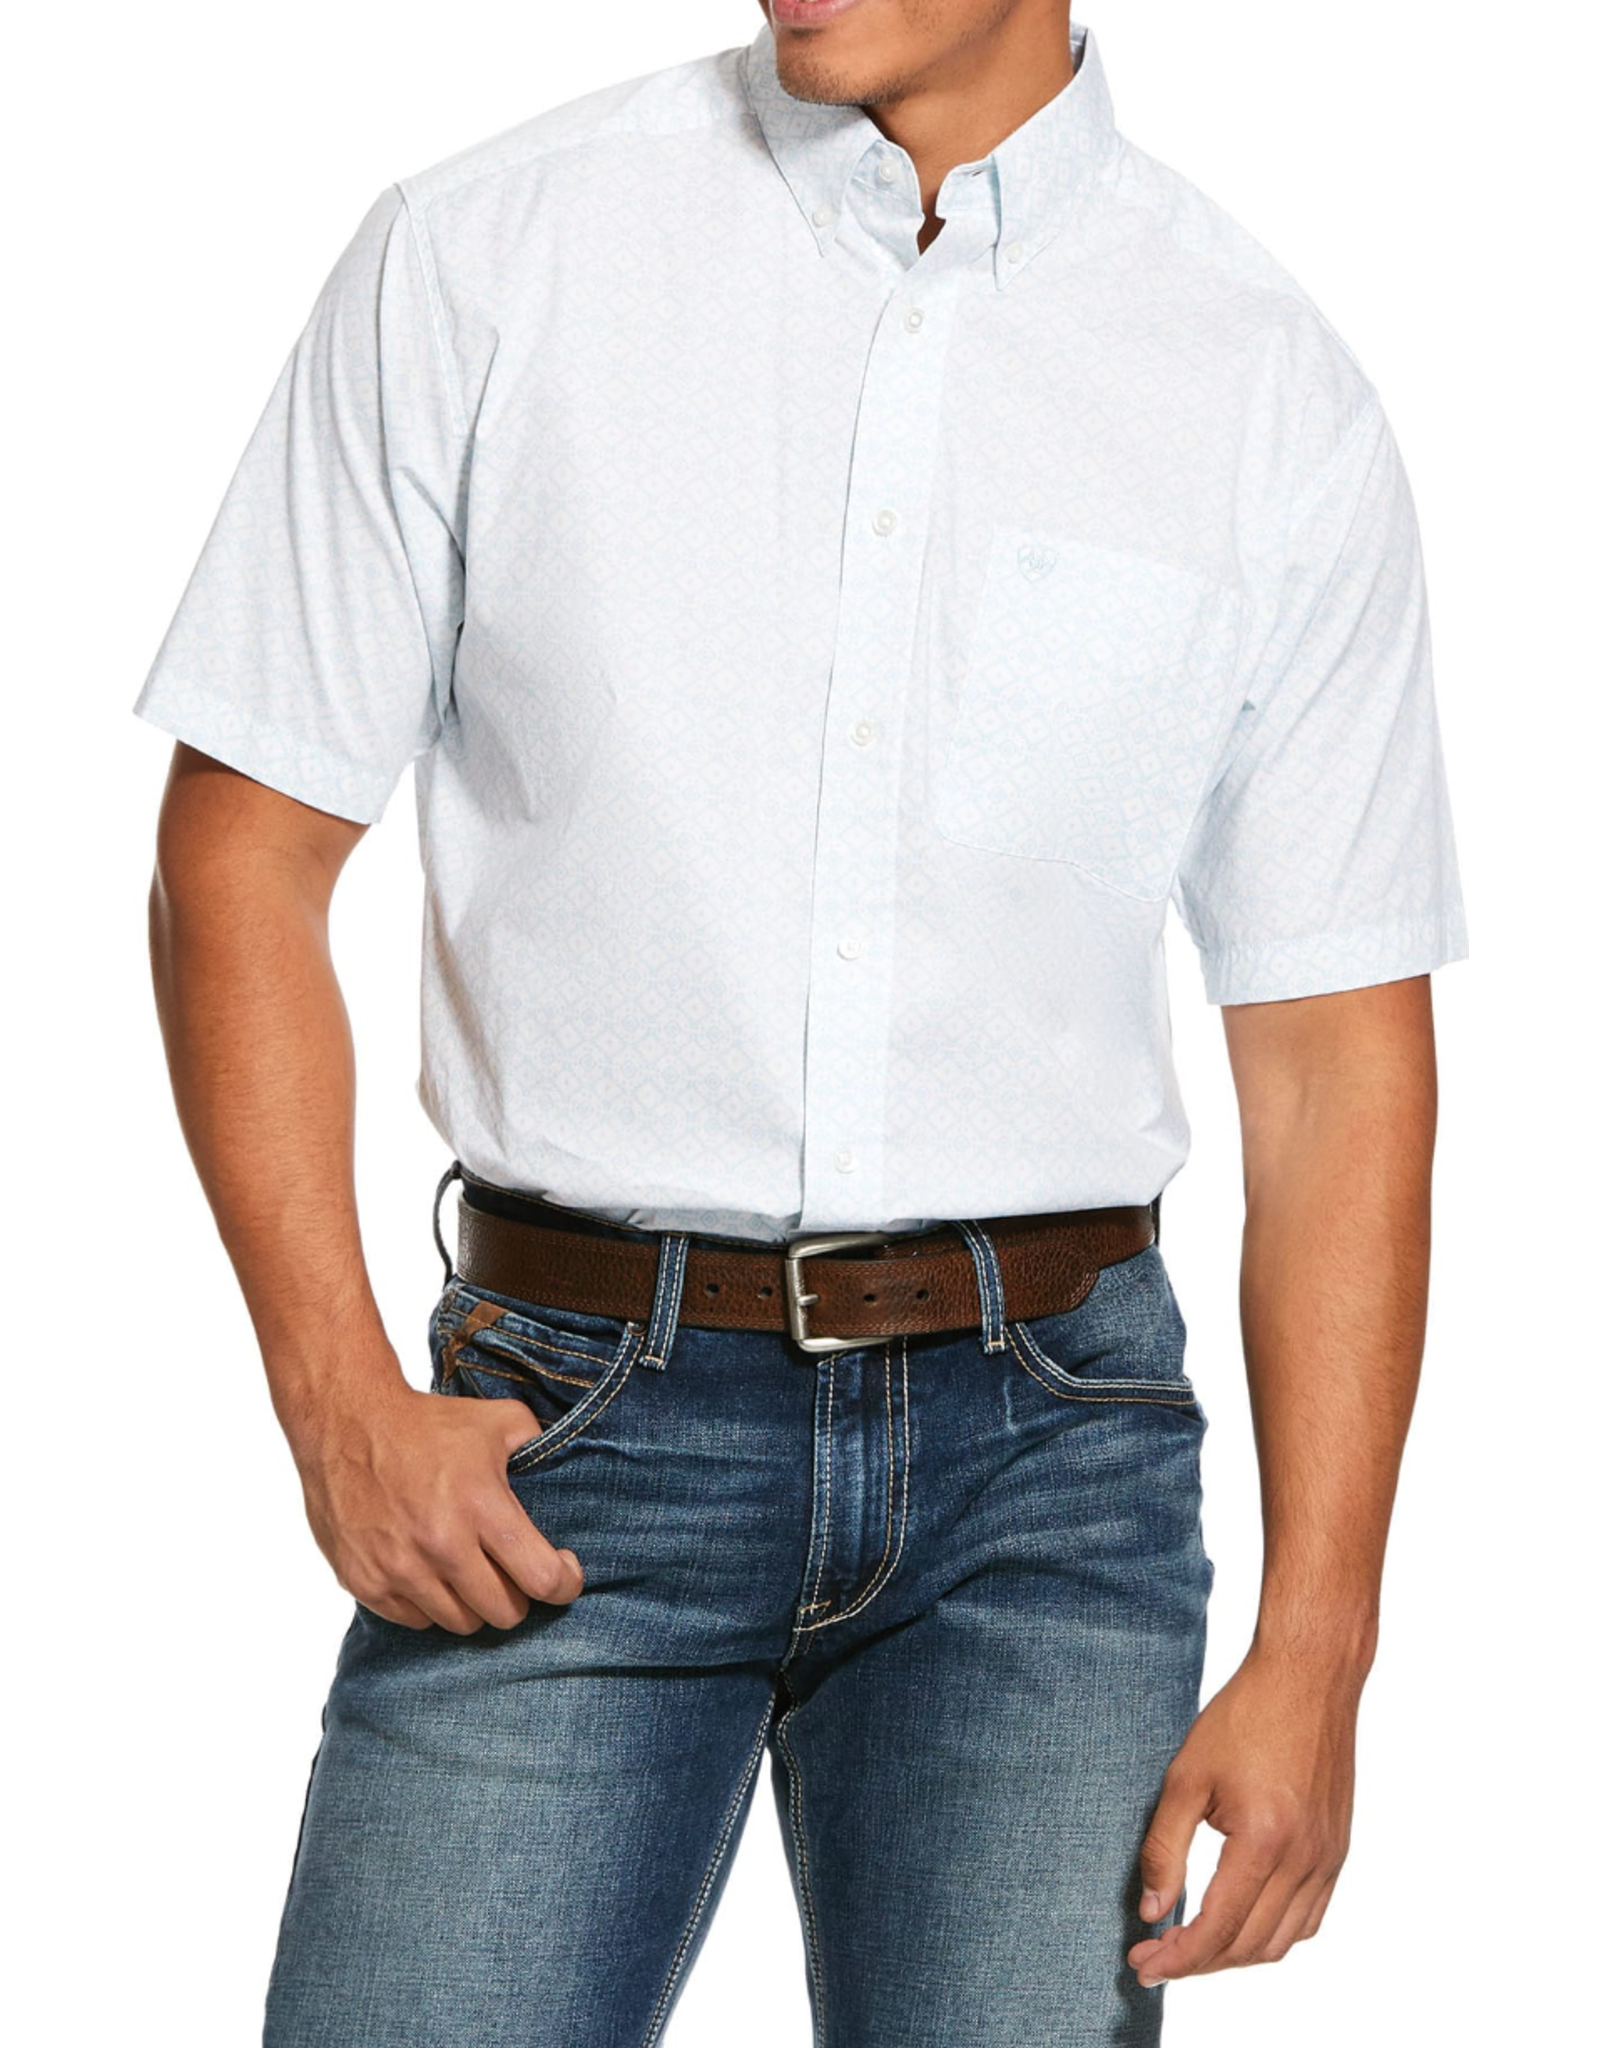 Ariat Ariat Nothell Print Stretch Classic Fit Shirt